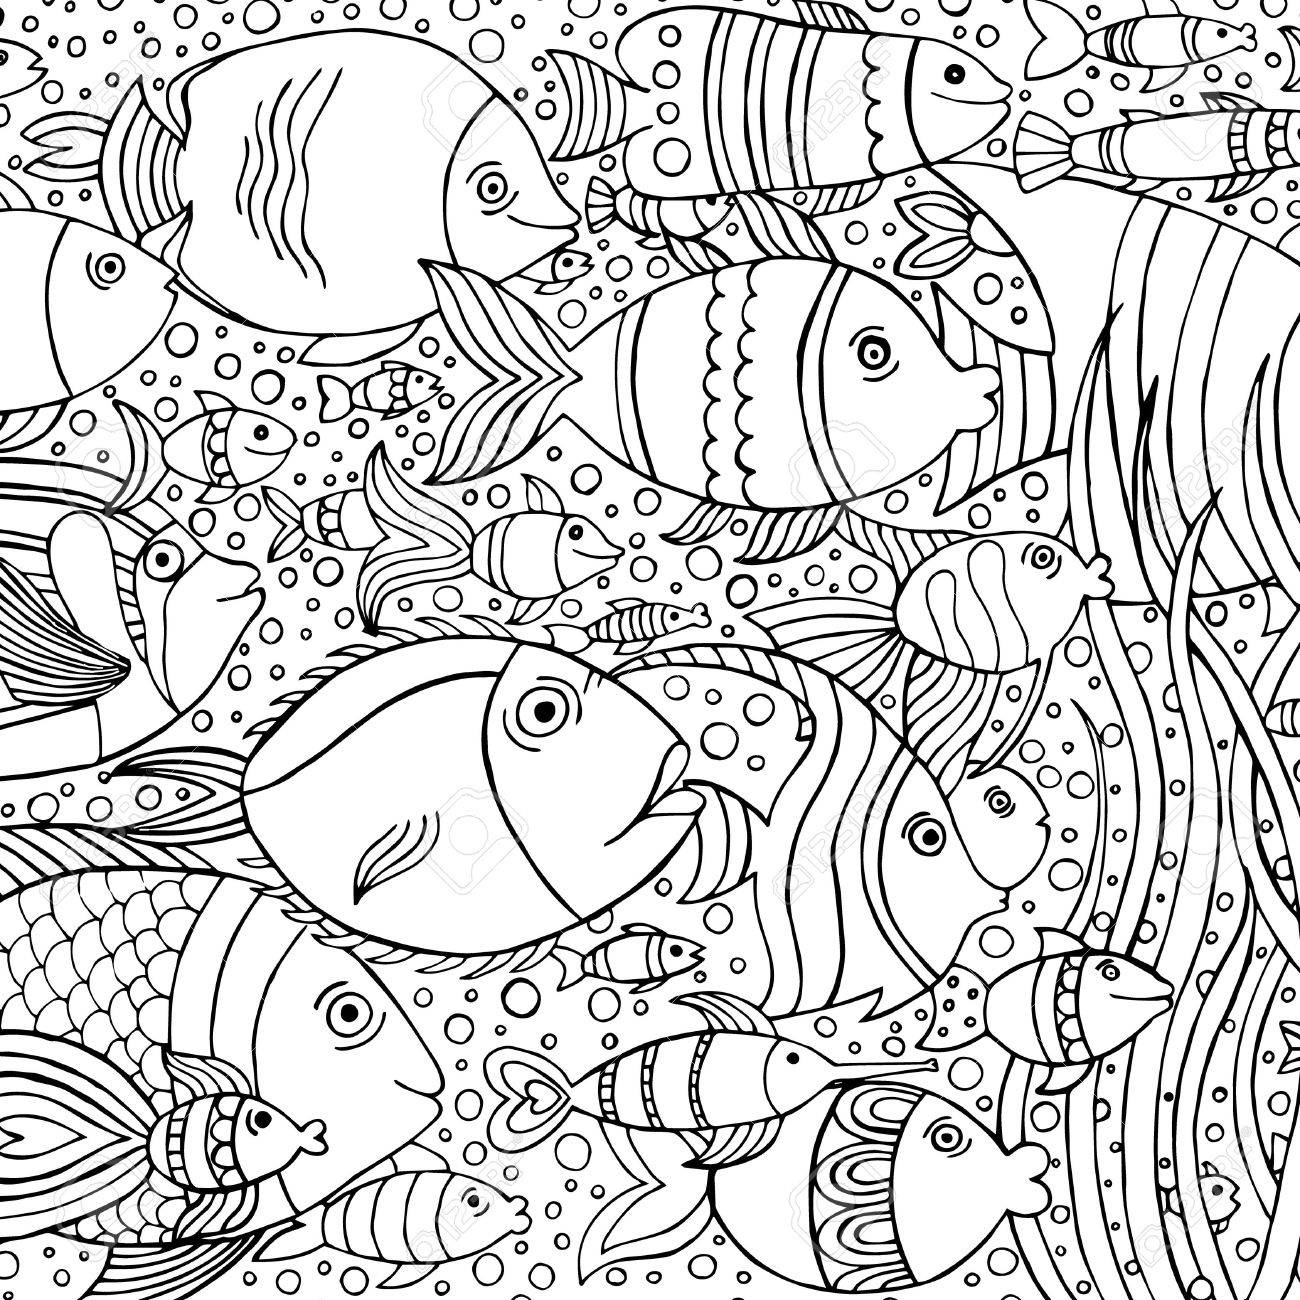 Hand Drawn Background With Many Fishes In The Water. Sea Life ...